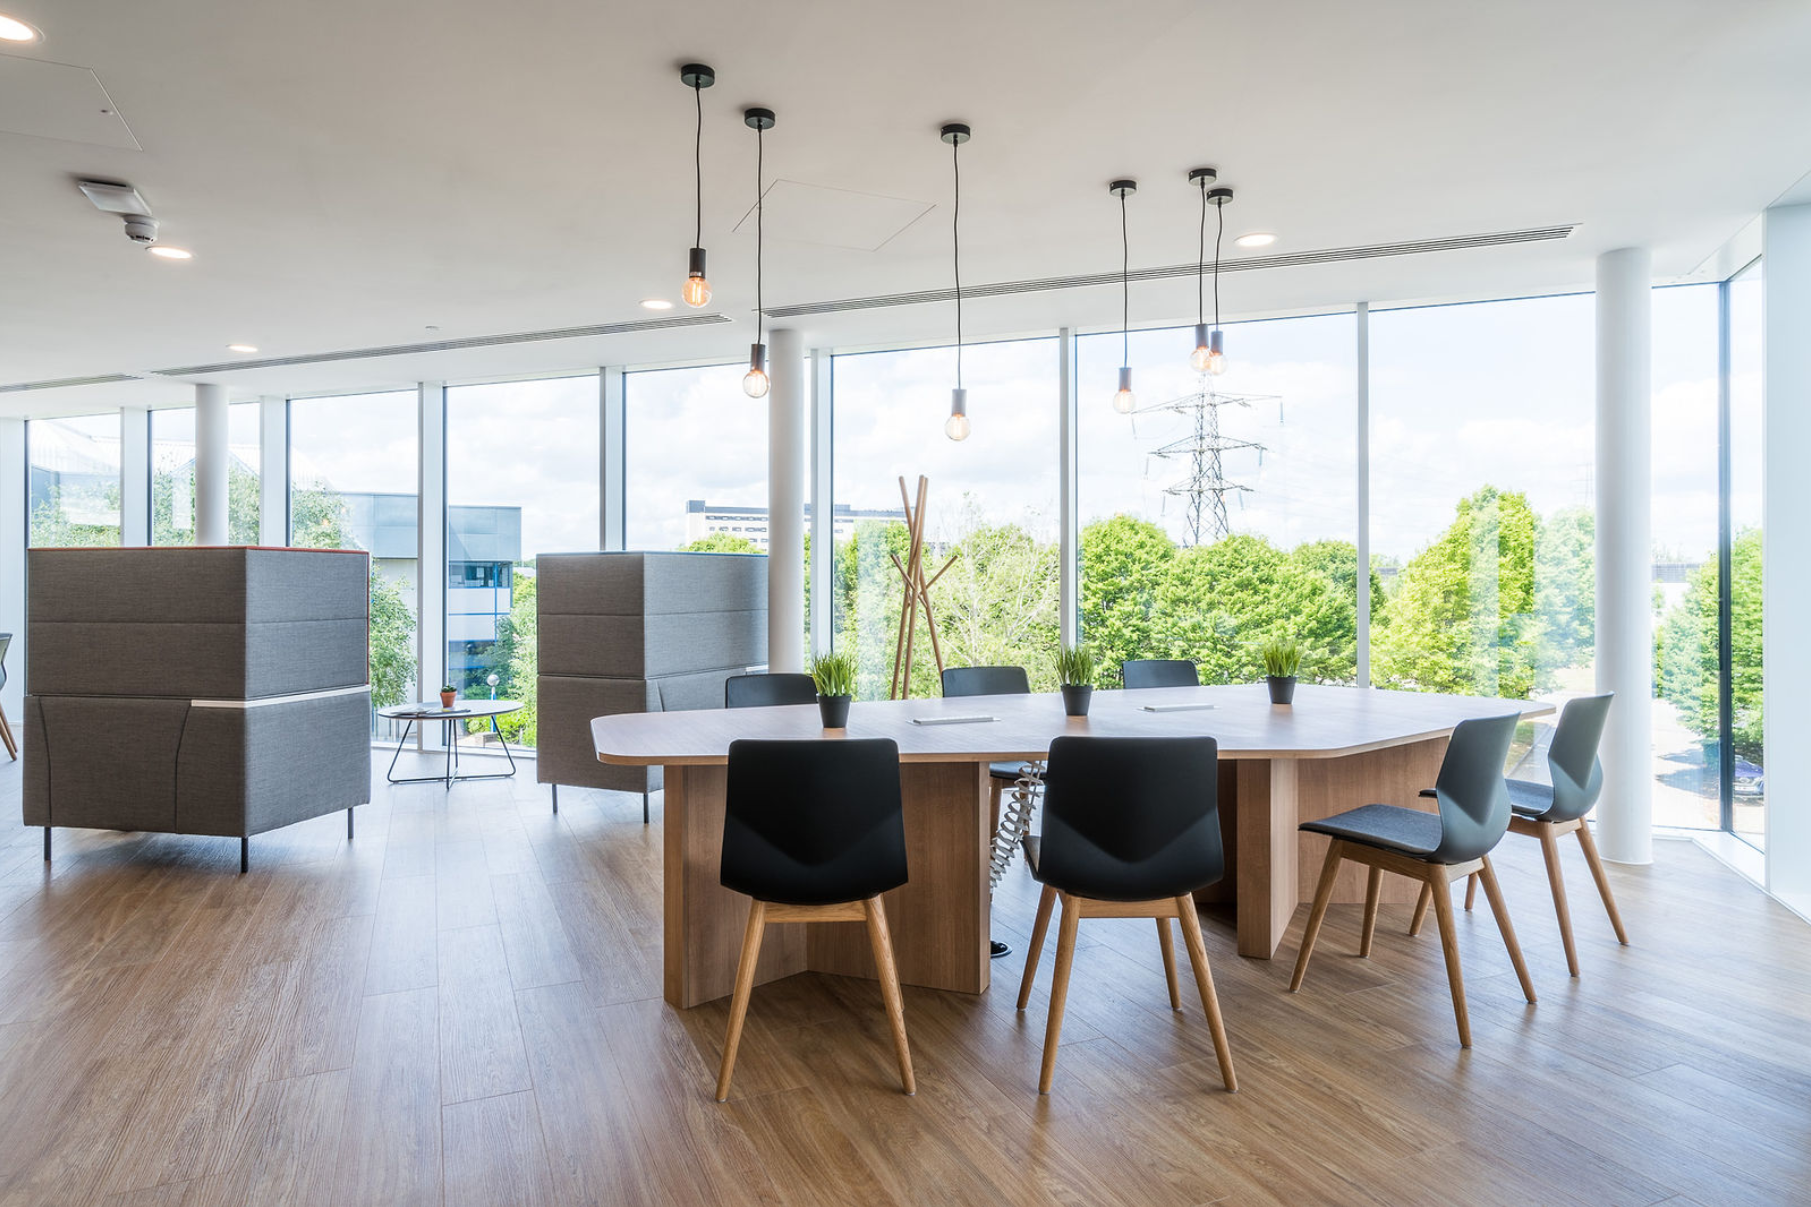 Regus' open plan collaborative office space at Winnersh Triangle